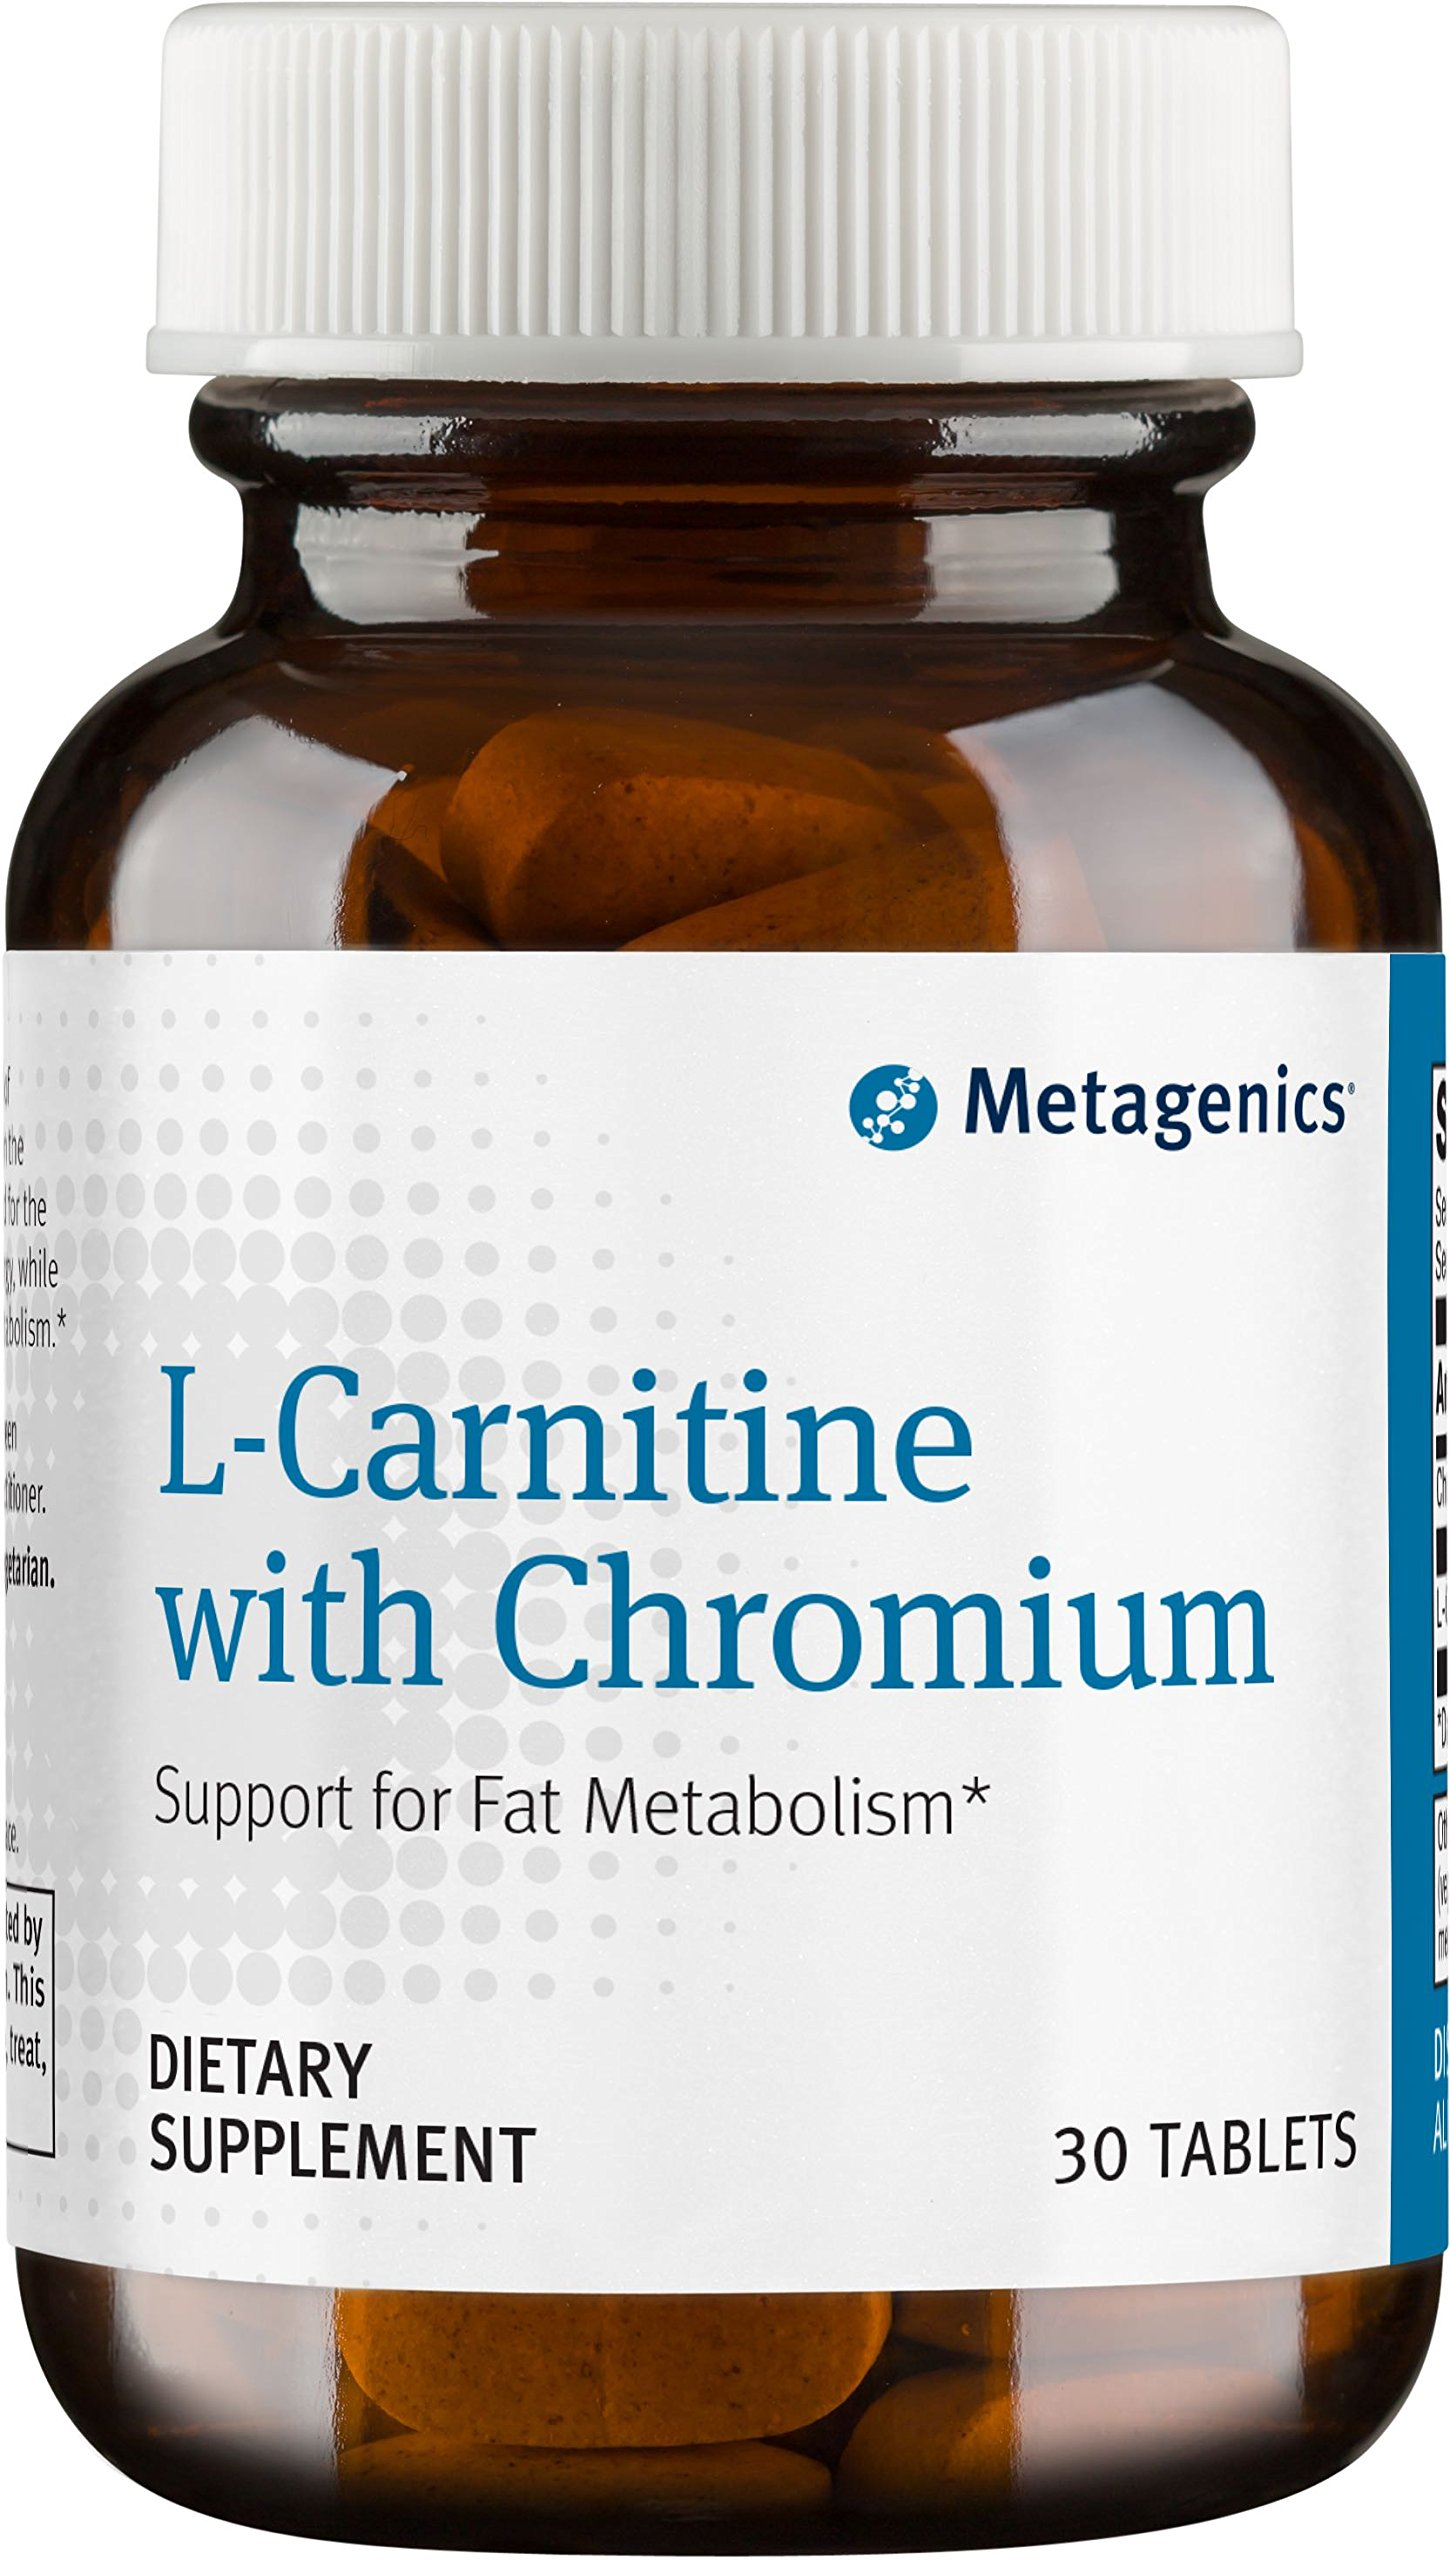 Metagenics - L-Carnitine with Chromium, 30 Count by Metagenics